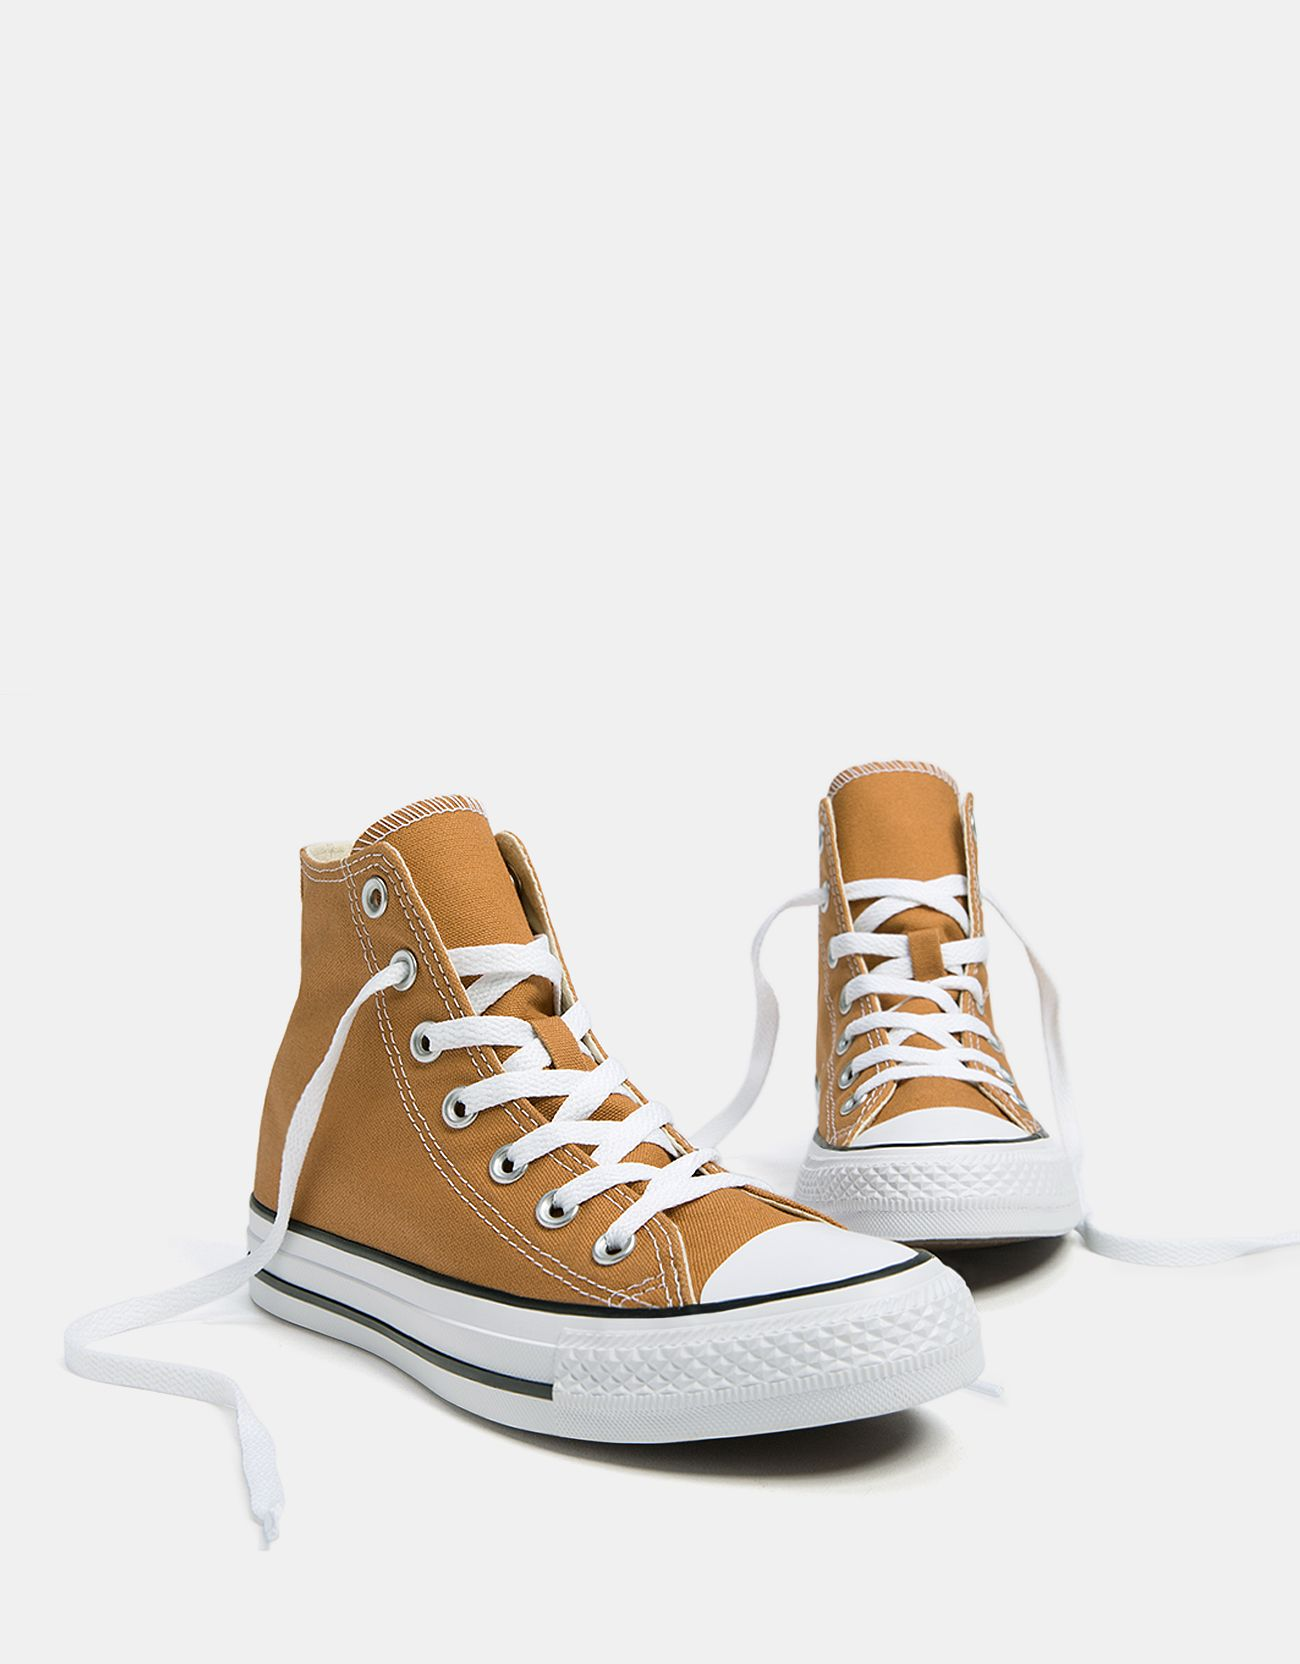 CONVERSE ALL STAR high top canvas sneakers. #Converse